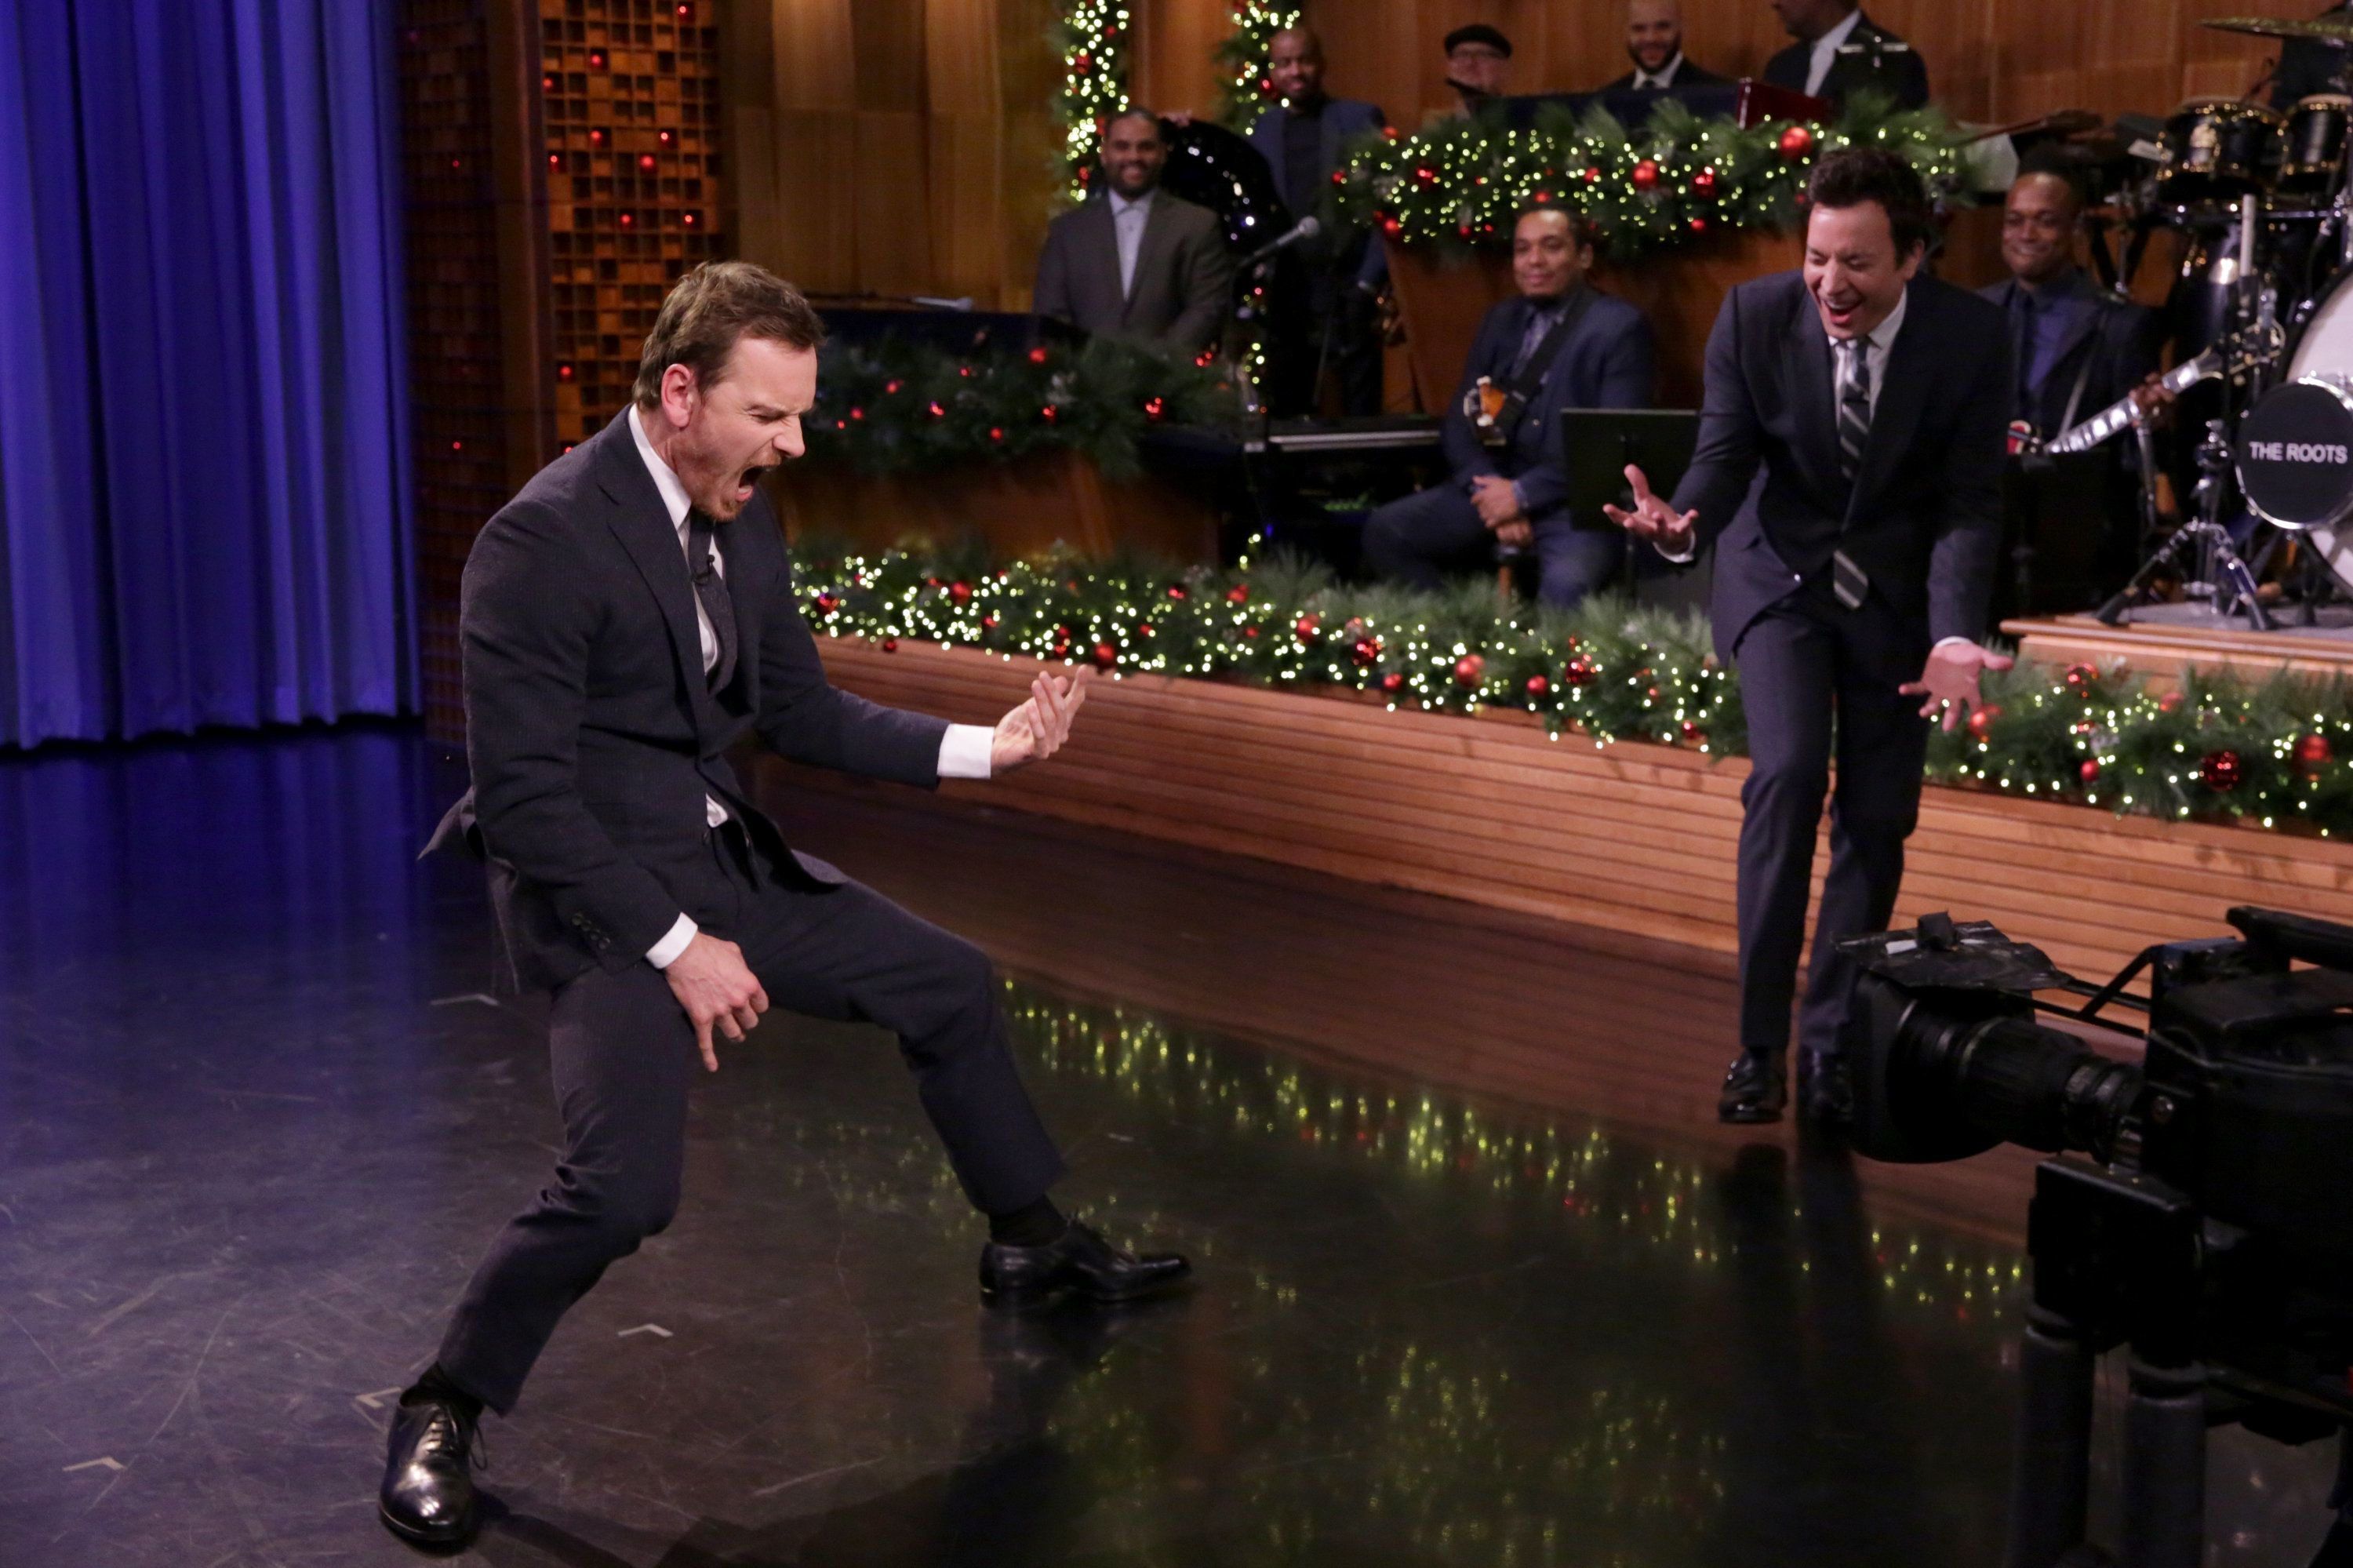 THE TONIGHT SHOW STARRING JIMMY FALLON -- Episode 0590 -- Pictured: (l-r) Actor Michael Fassbender and host Jimmy Fallon have an Air Guitar Battle on December 13, 2016 -- (Photo by: Andrew Lipovsky/NBC/NBCU Photo Bank via Getty Images)